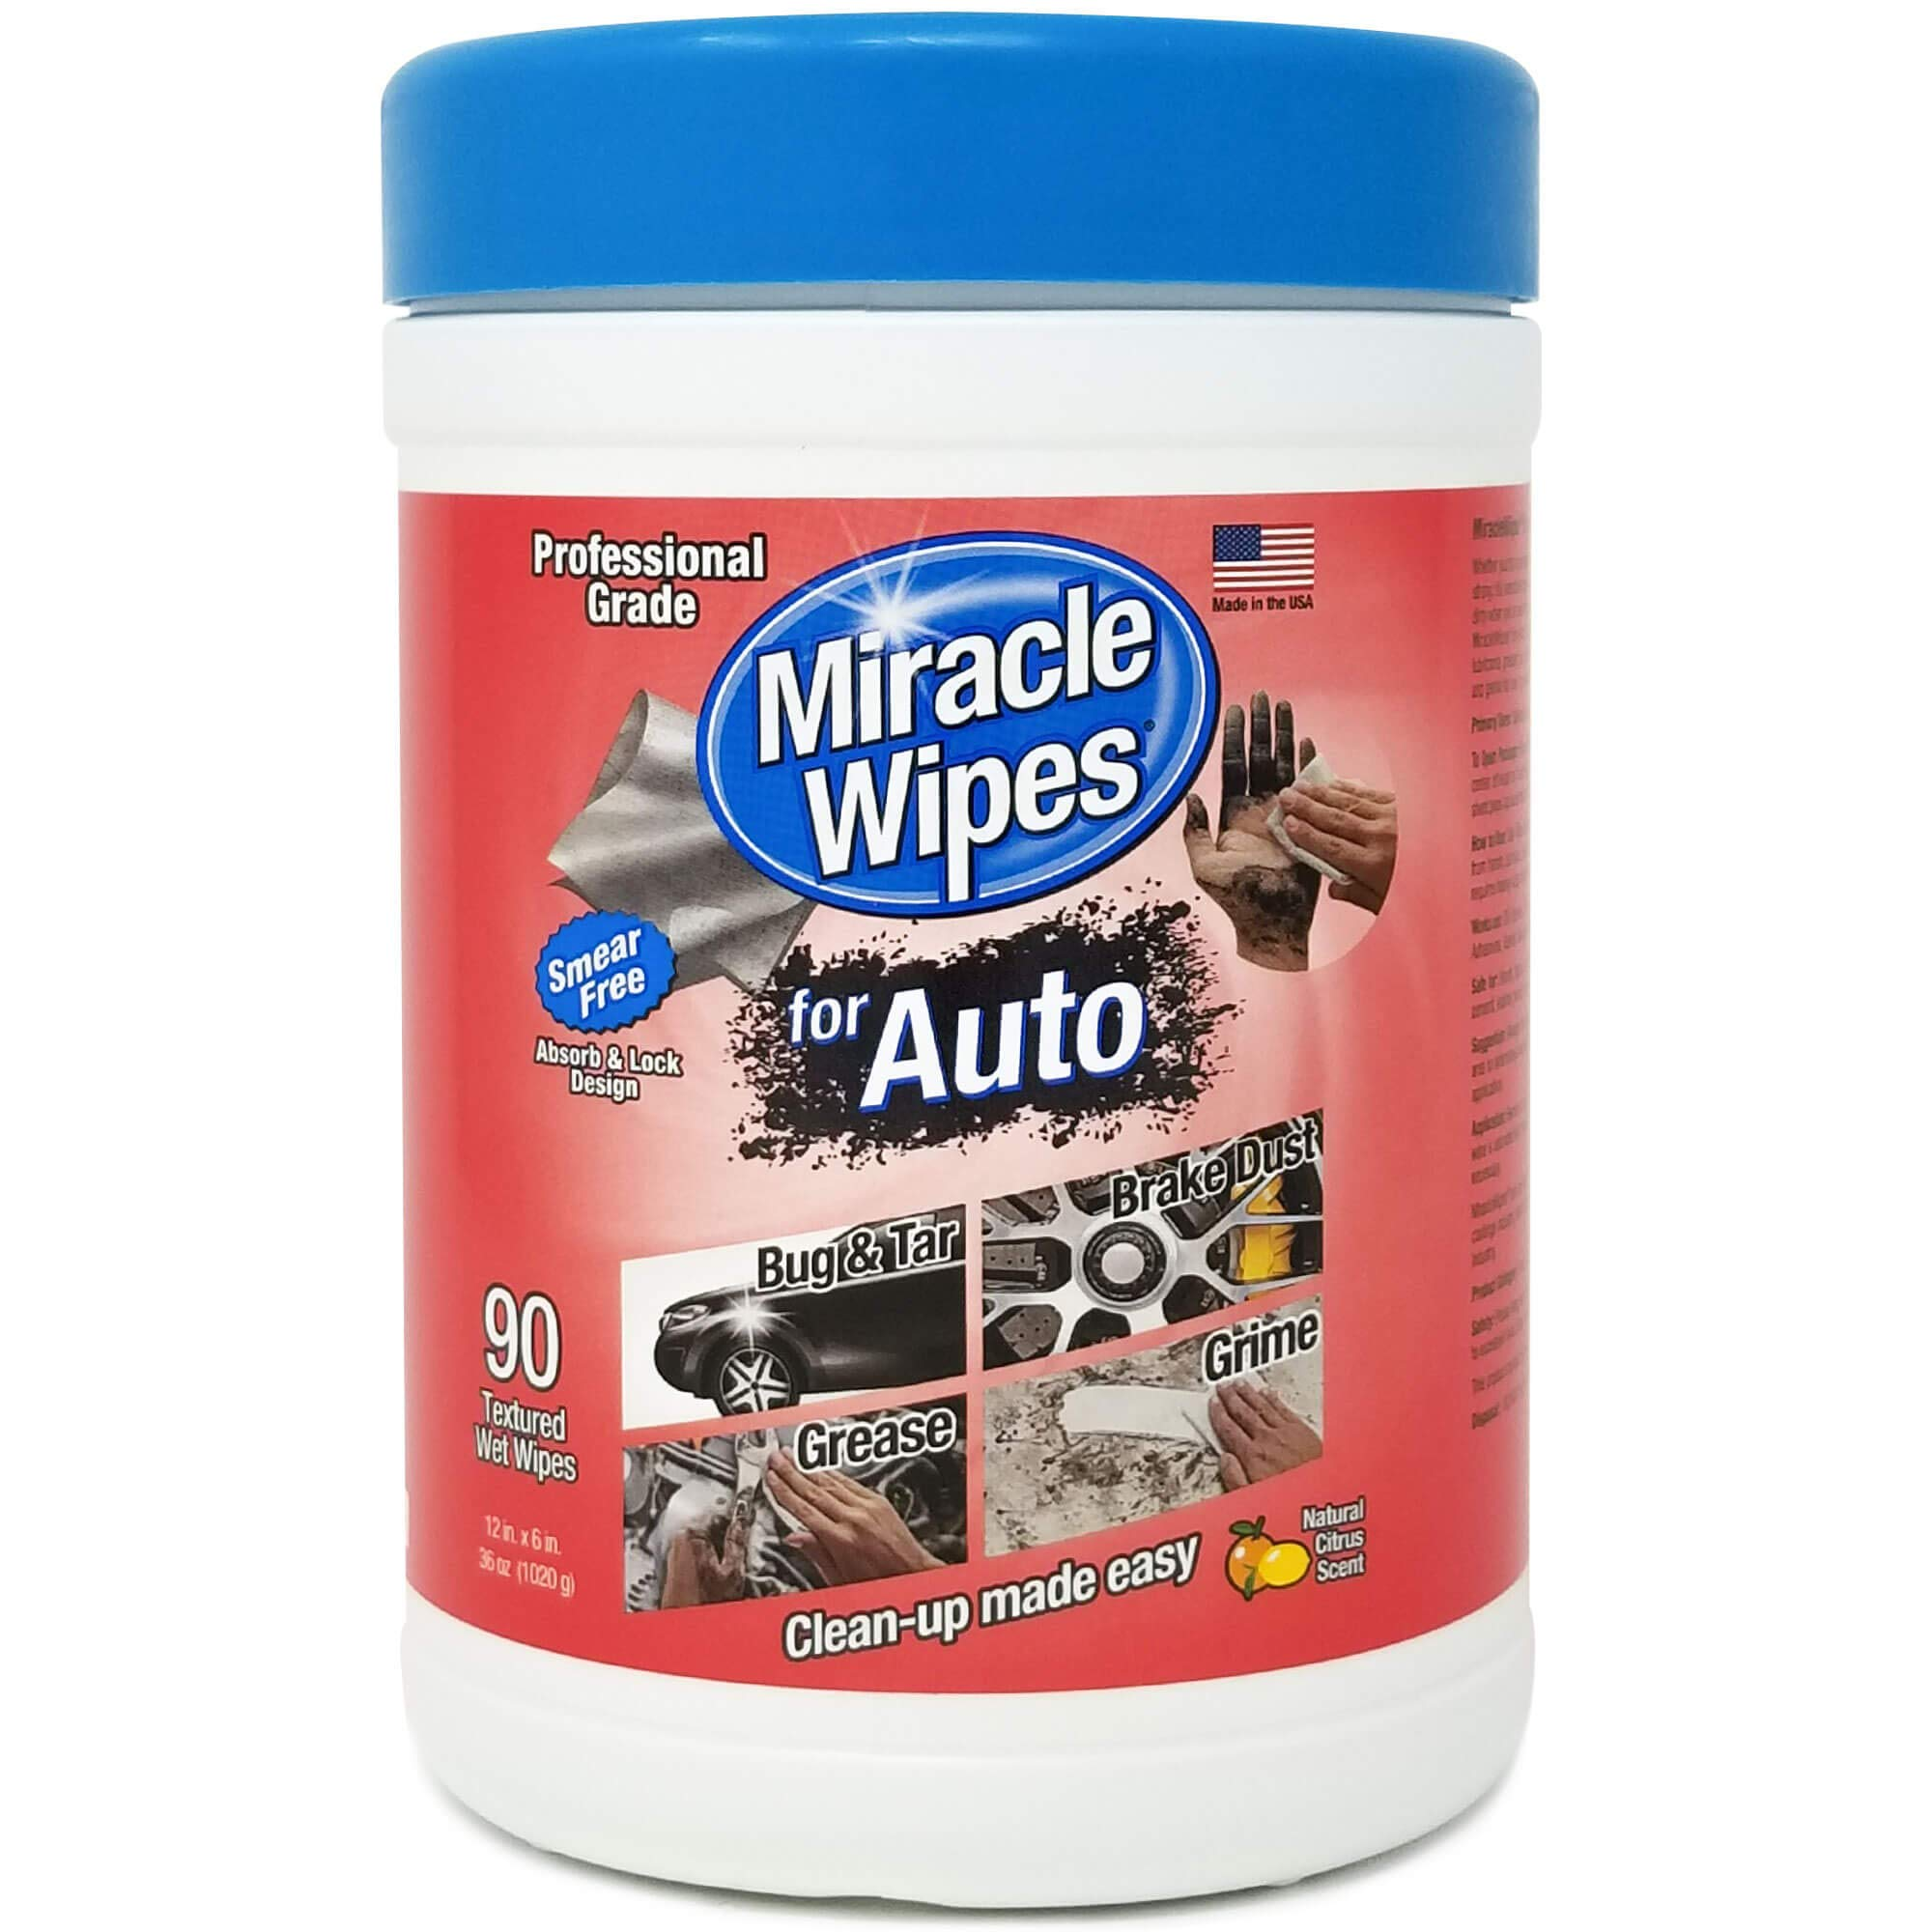 MiracleWipes for Automotive - All Purpose Cleaner, Hands, Interior, Exterior, Detailing - Removes Grease, Lubricants, Sticky Adhesives, Grime, Dirt & More - Car Cleaning Supplies - 6 Pack (90 Count) by MiracleWipes (Image #1)